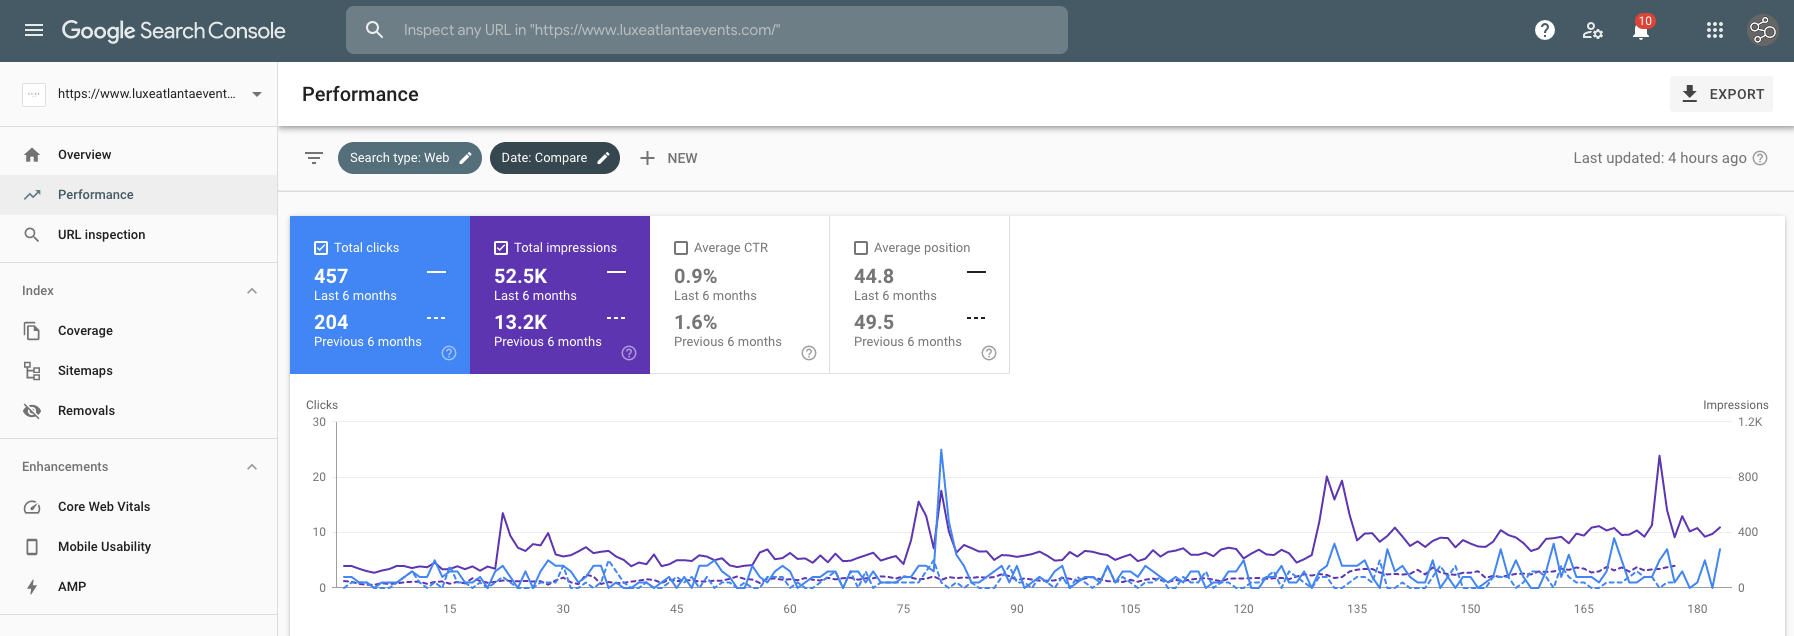 Google Search Console Performance Case Study